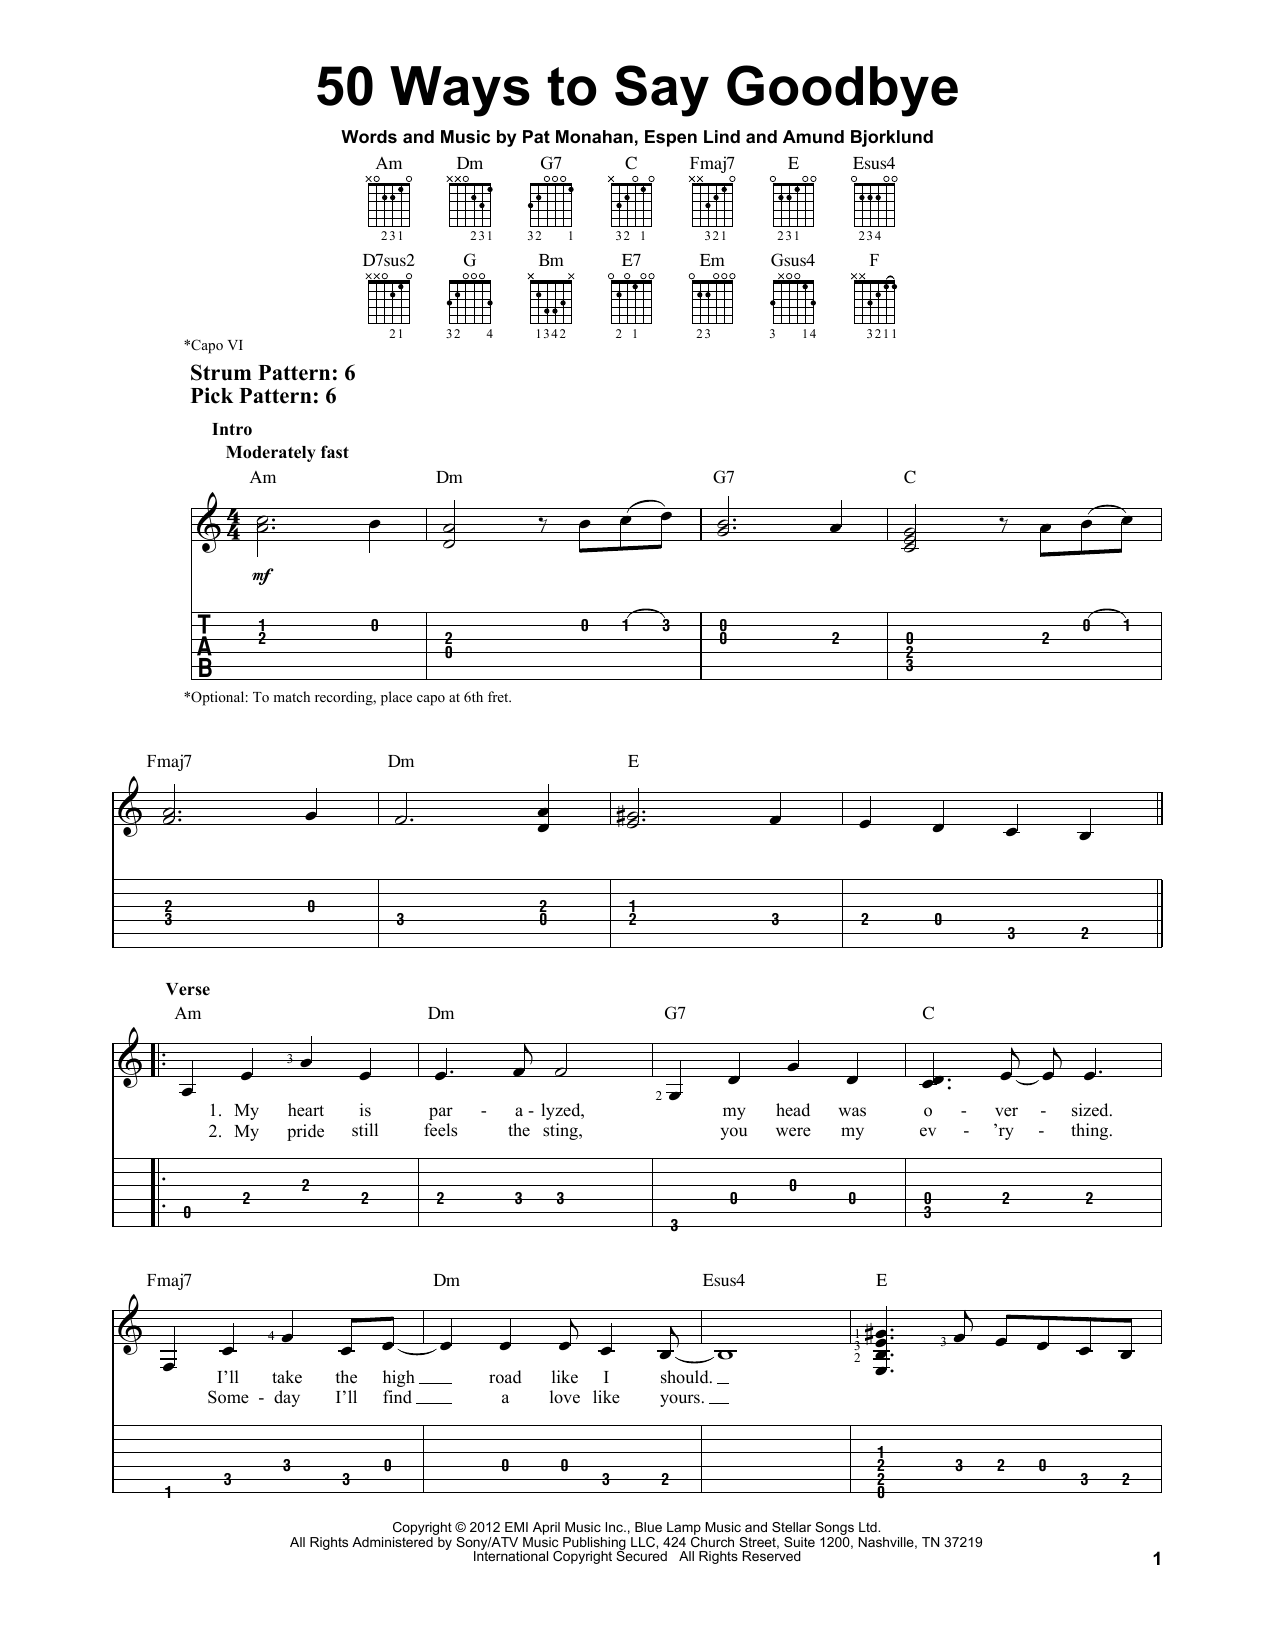 Sheet music digital files to print licensed espen lind digital sheet music digital files to print licensed espen lind digital sheet music hexwebz Choice Image